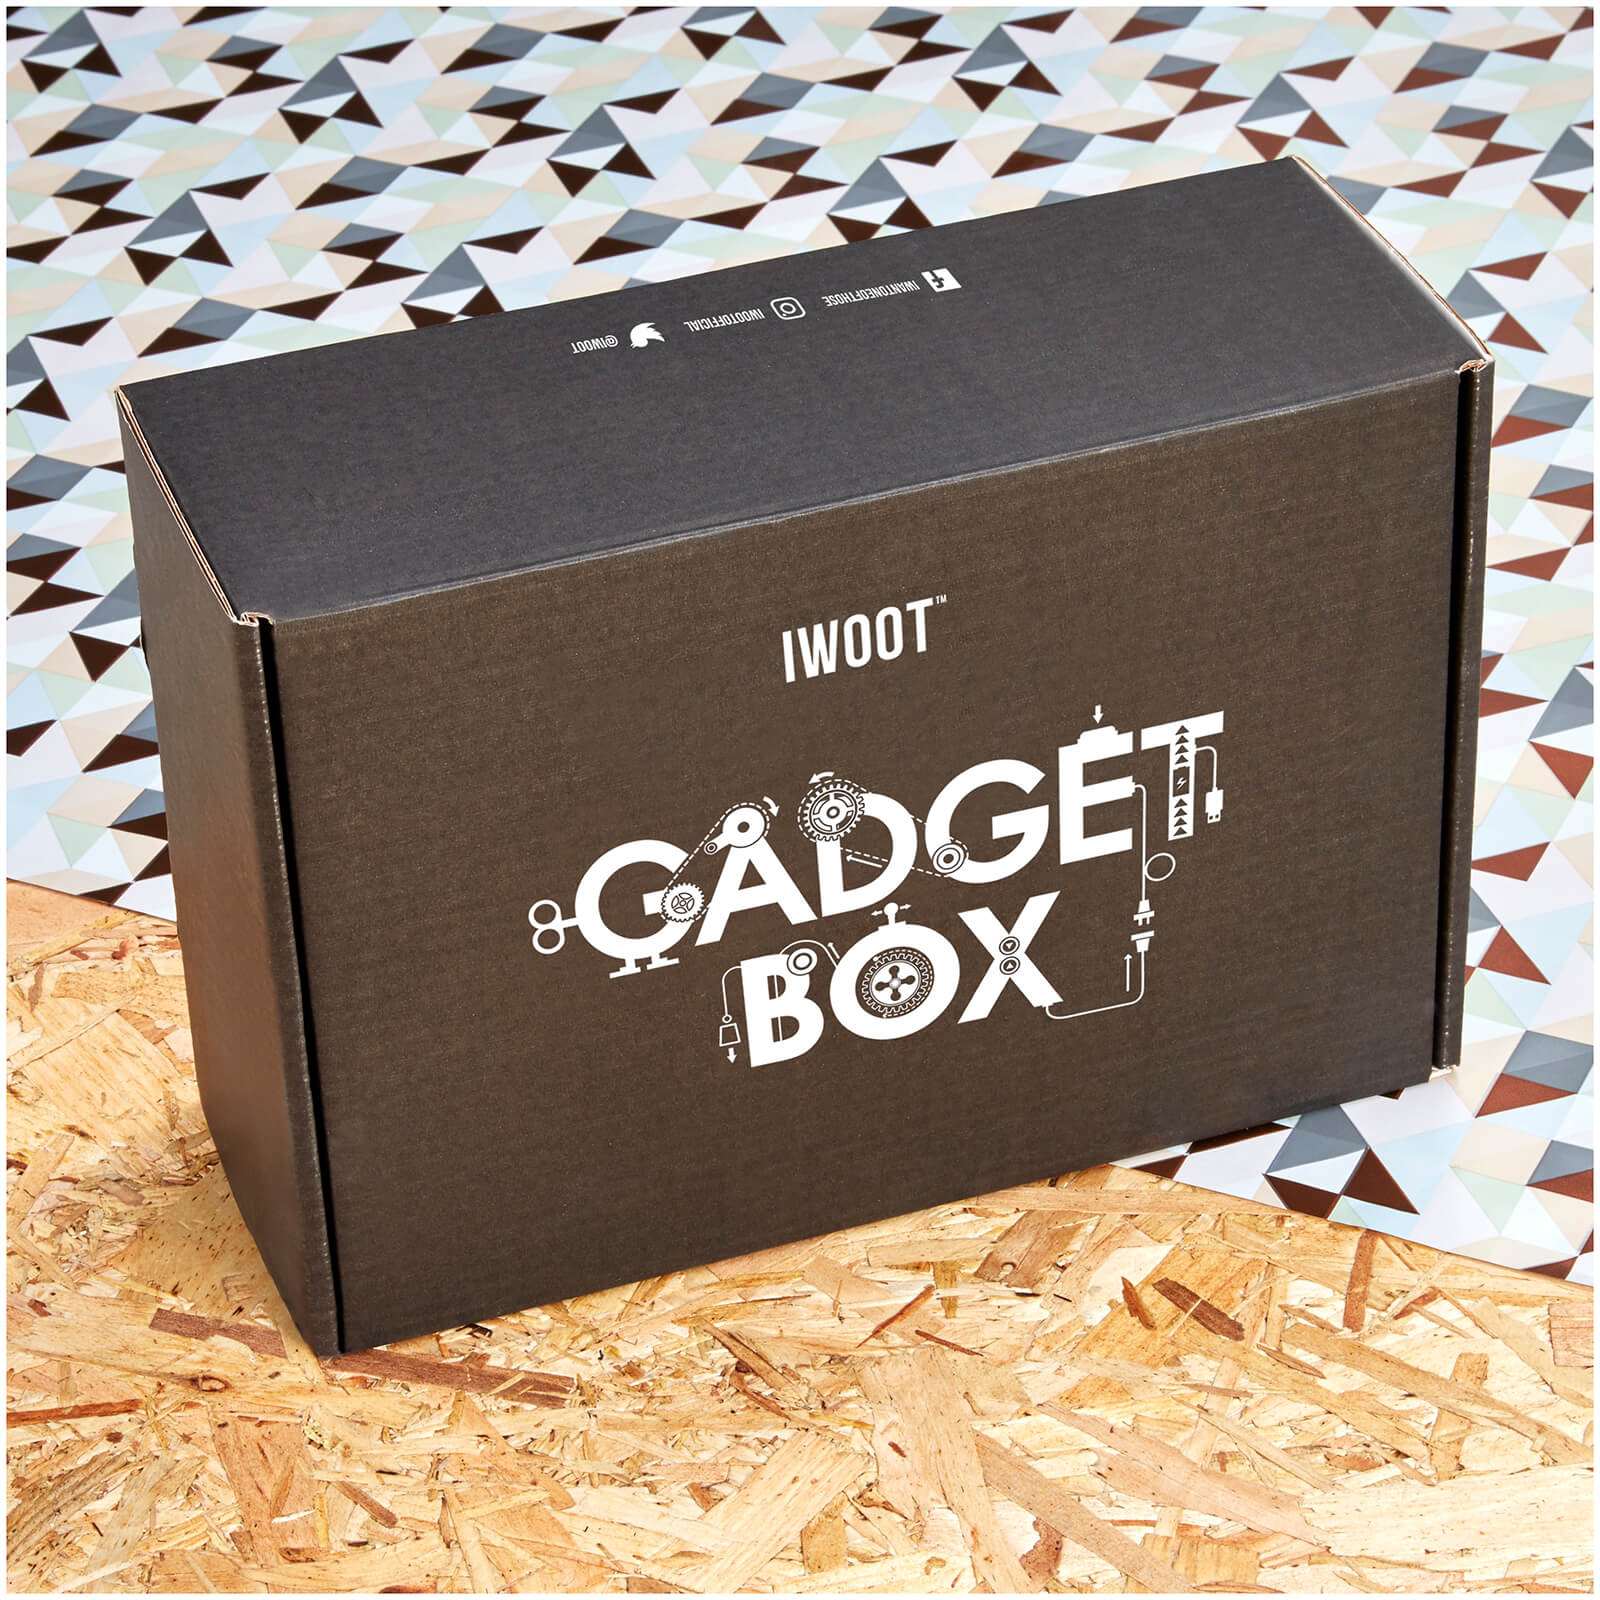 Mystery Gadget Box - Worth over £50